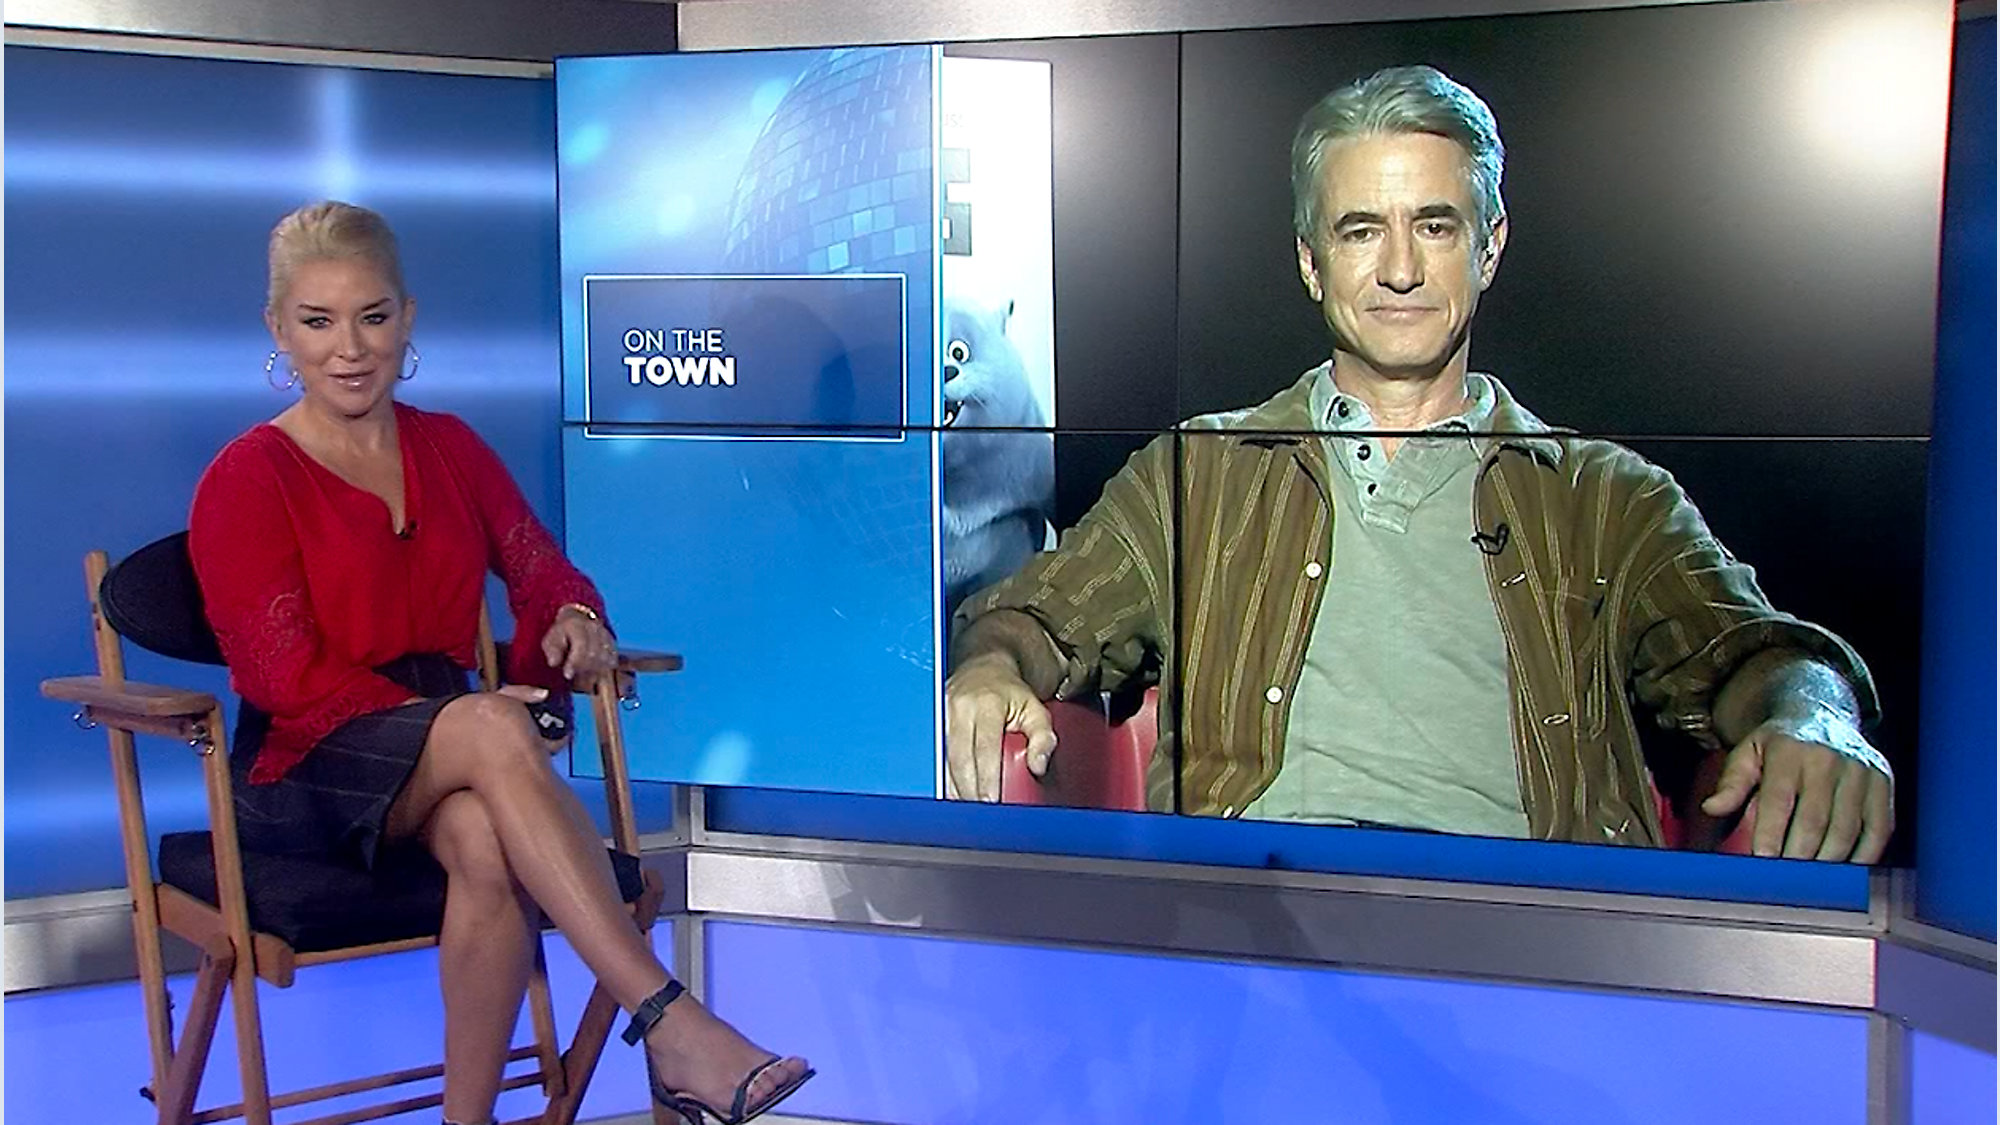 On the Town | Entertainment News | Spectrum Bay News 9